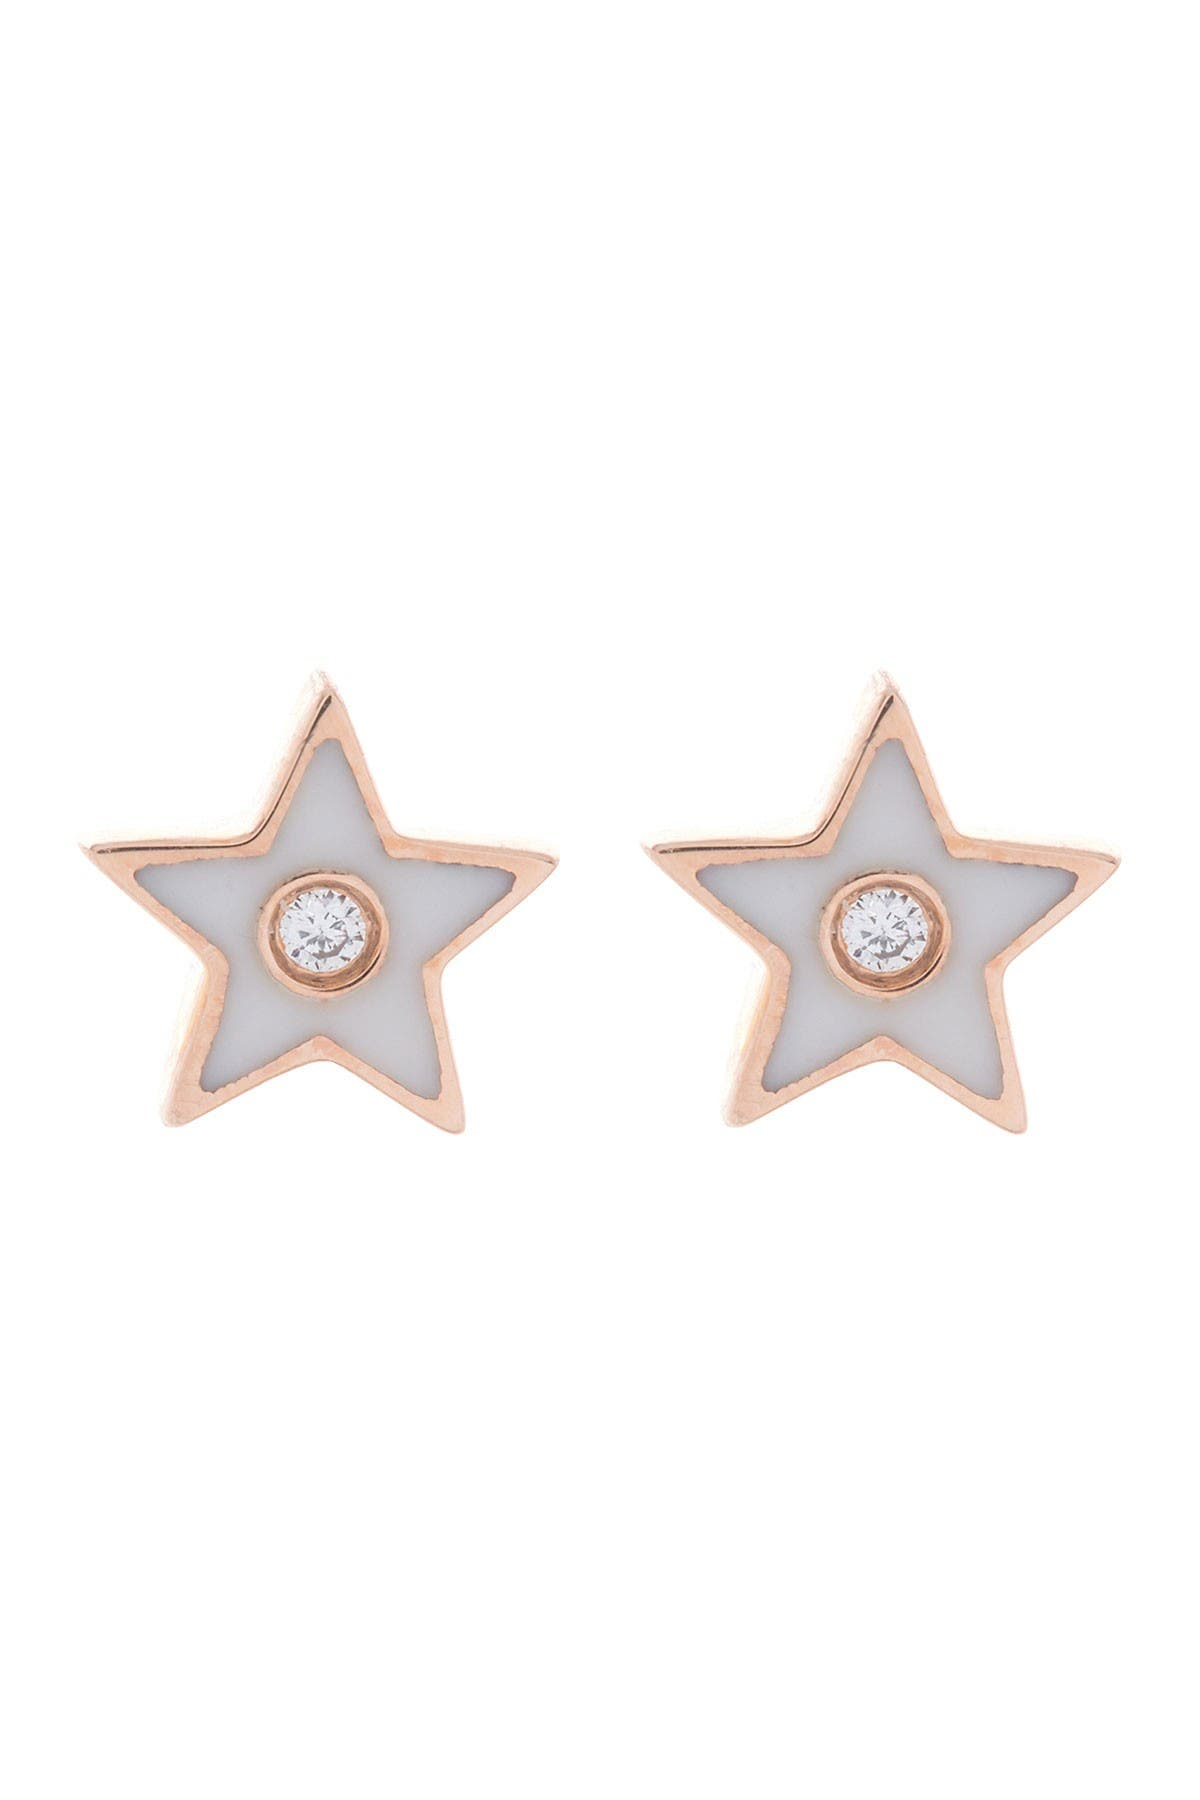 Image of EF Collection 14K Rose Gold Bezel Set Diamond & Enamel Star Stud Earrings - 0.01 ctw